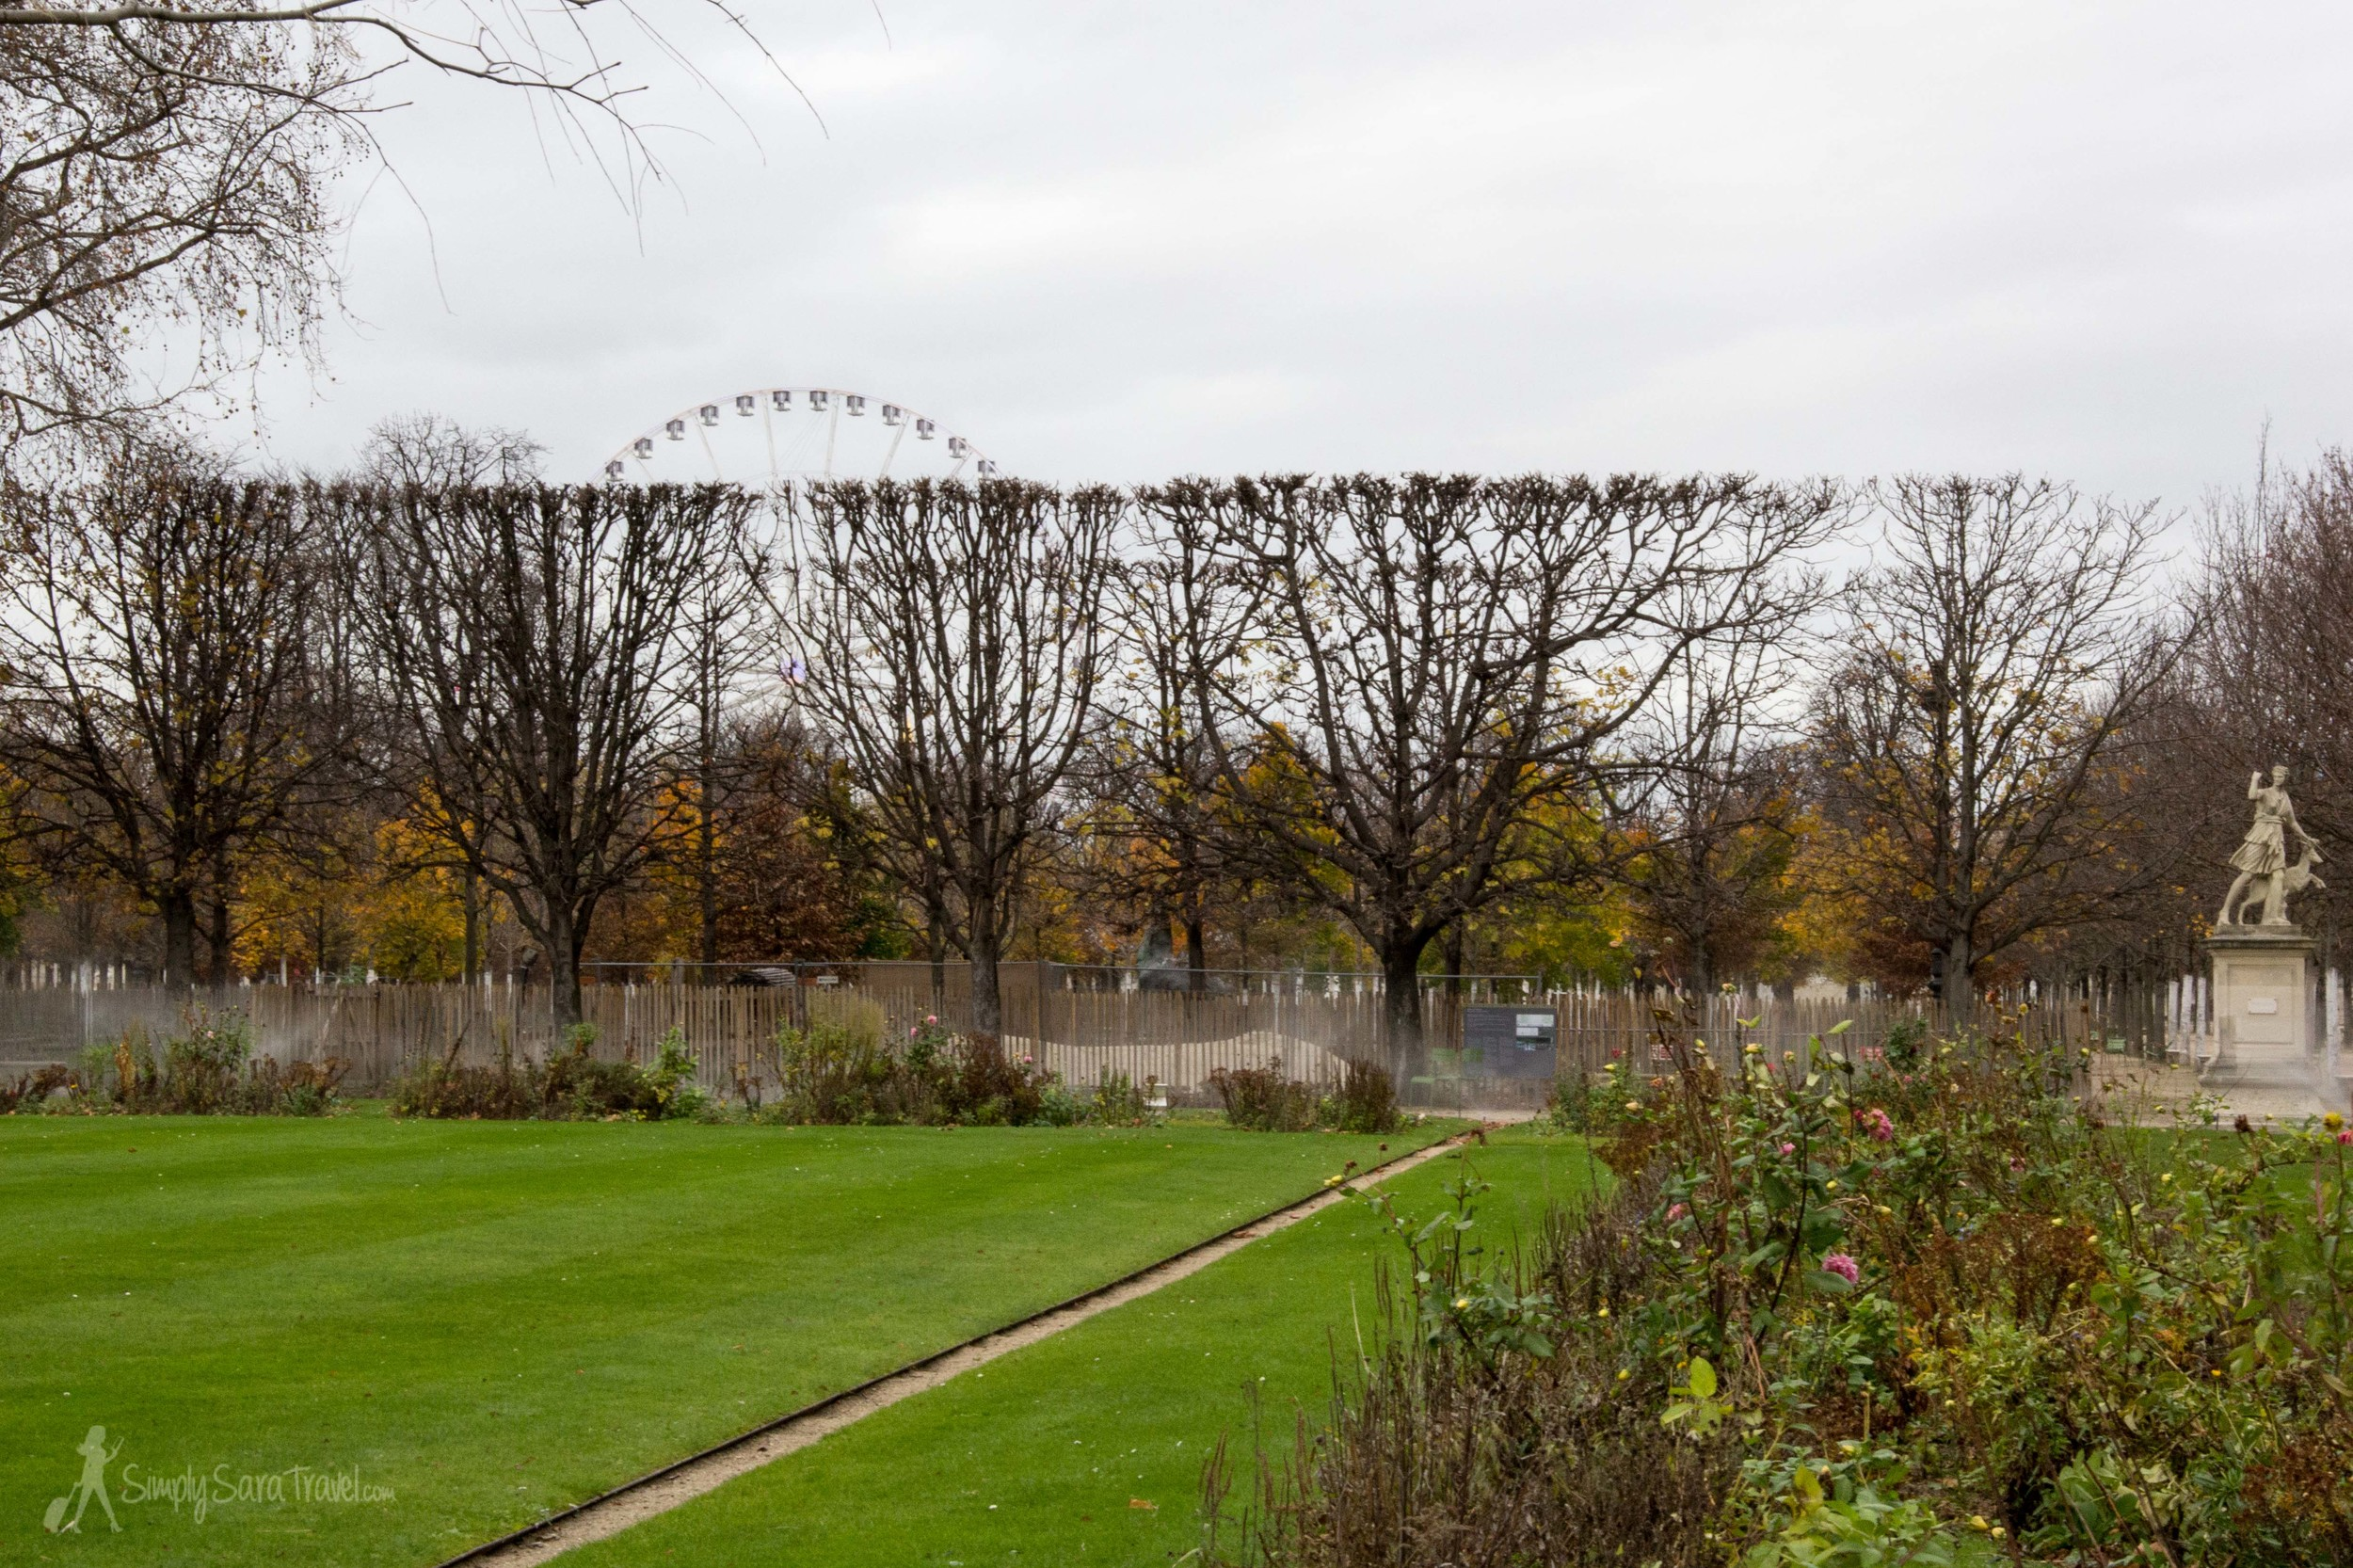 Tuileries Garden, Paris, France at winter with Grande Roue de Paris